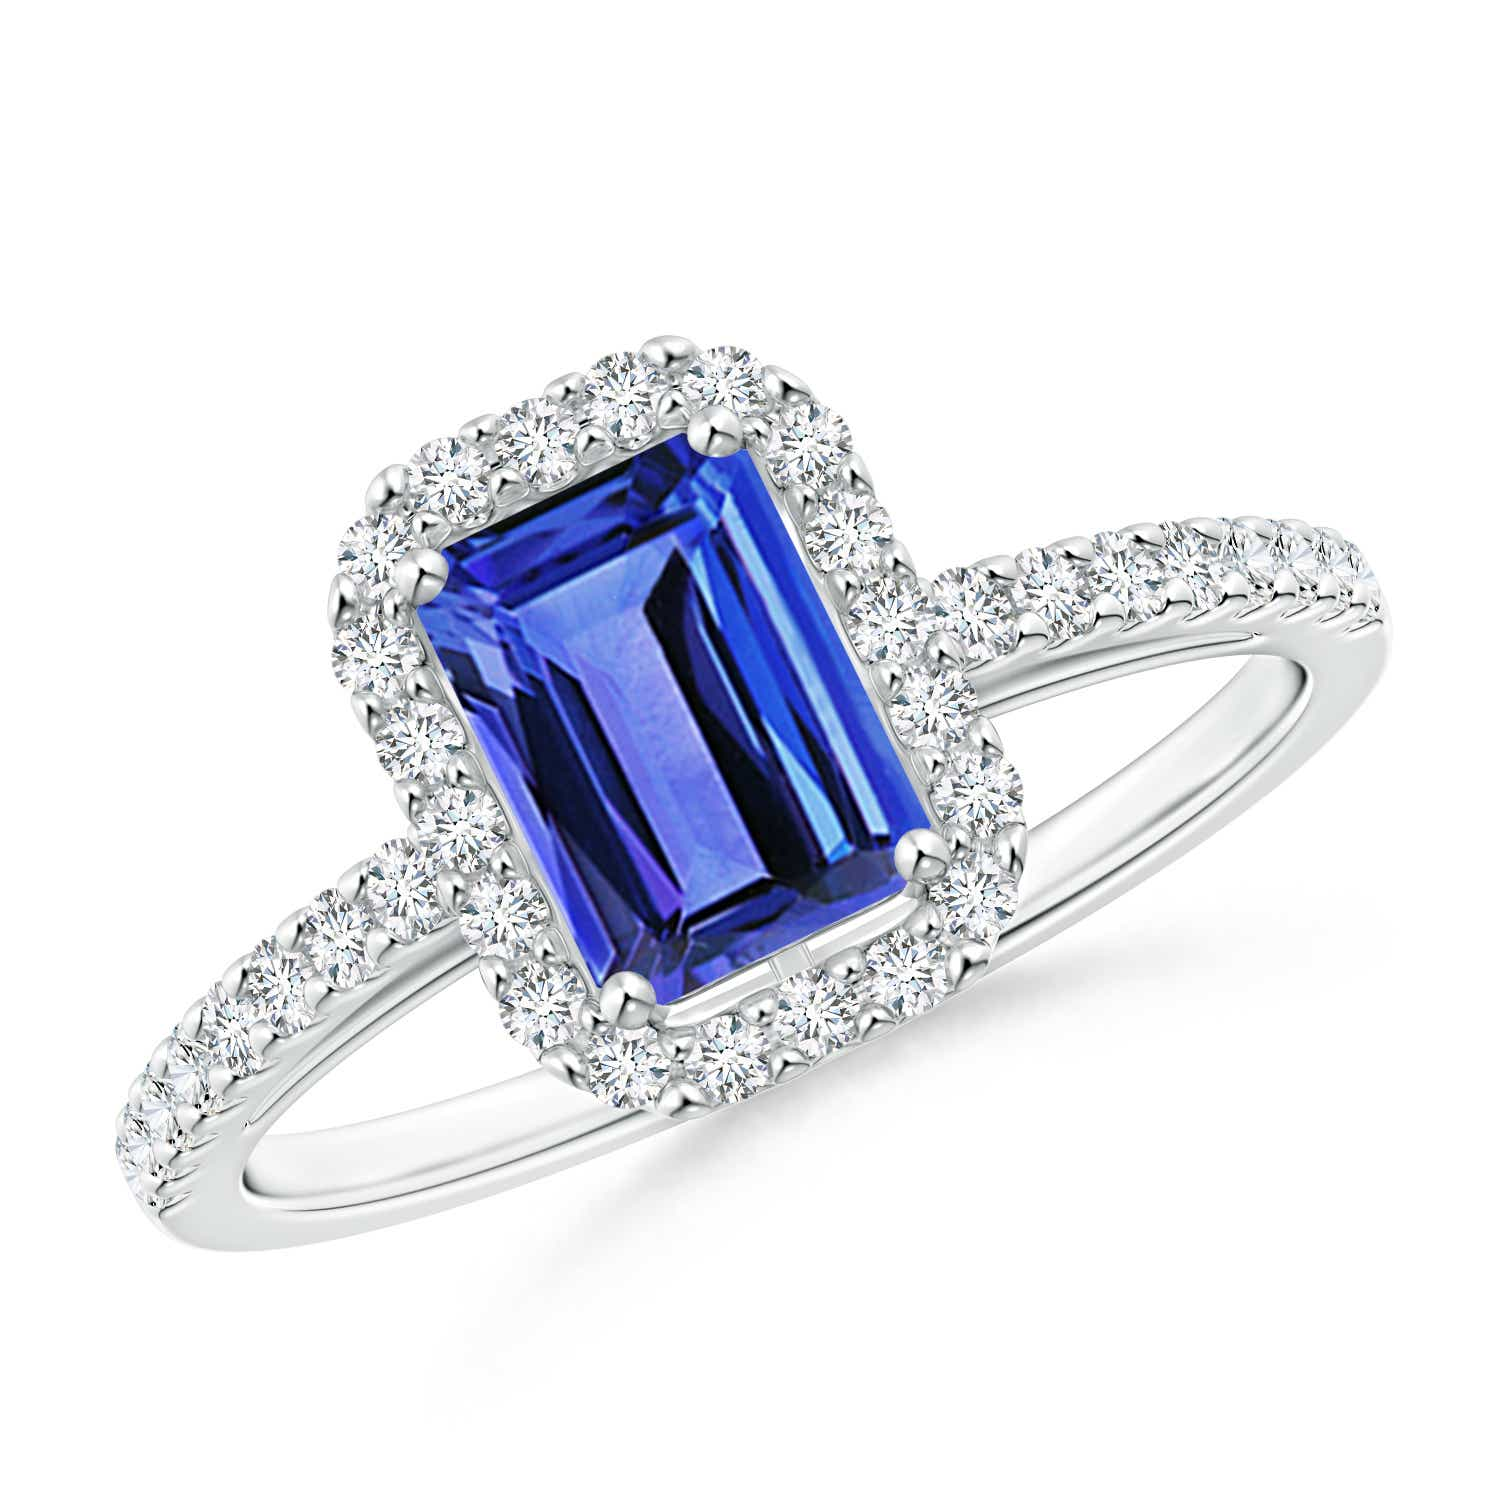 Angara Tanzanite Halo Solitaire Ring with Diamond in White Gold xY43eX